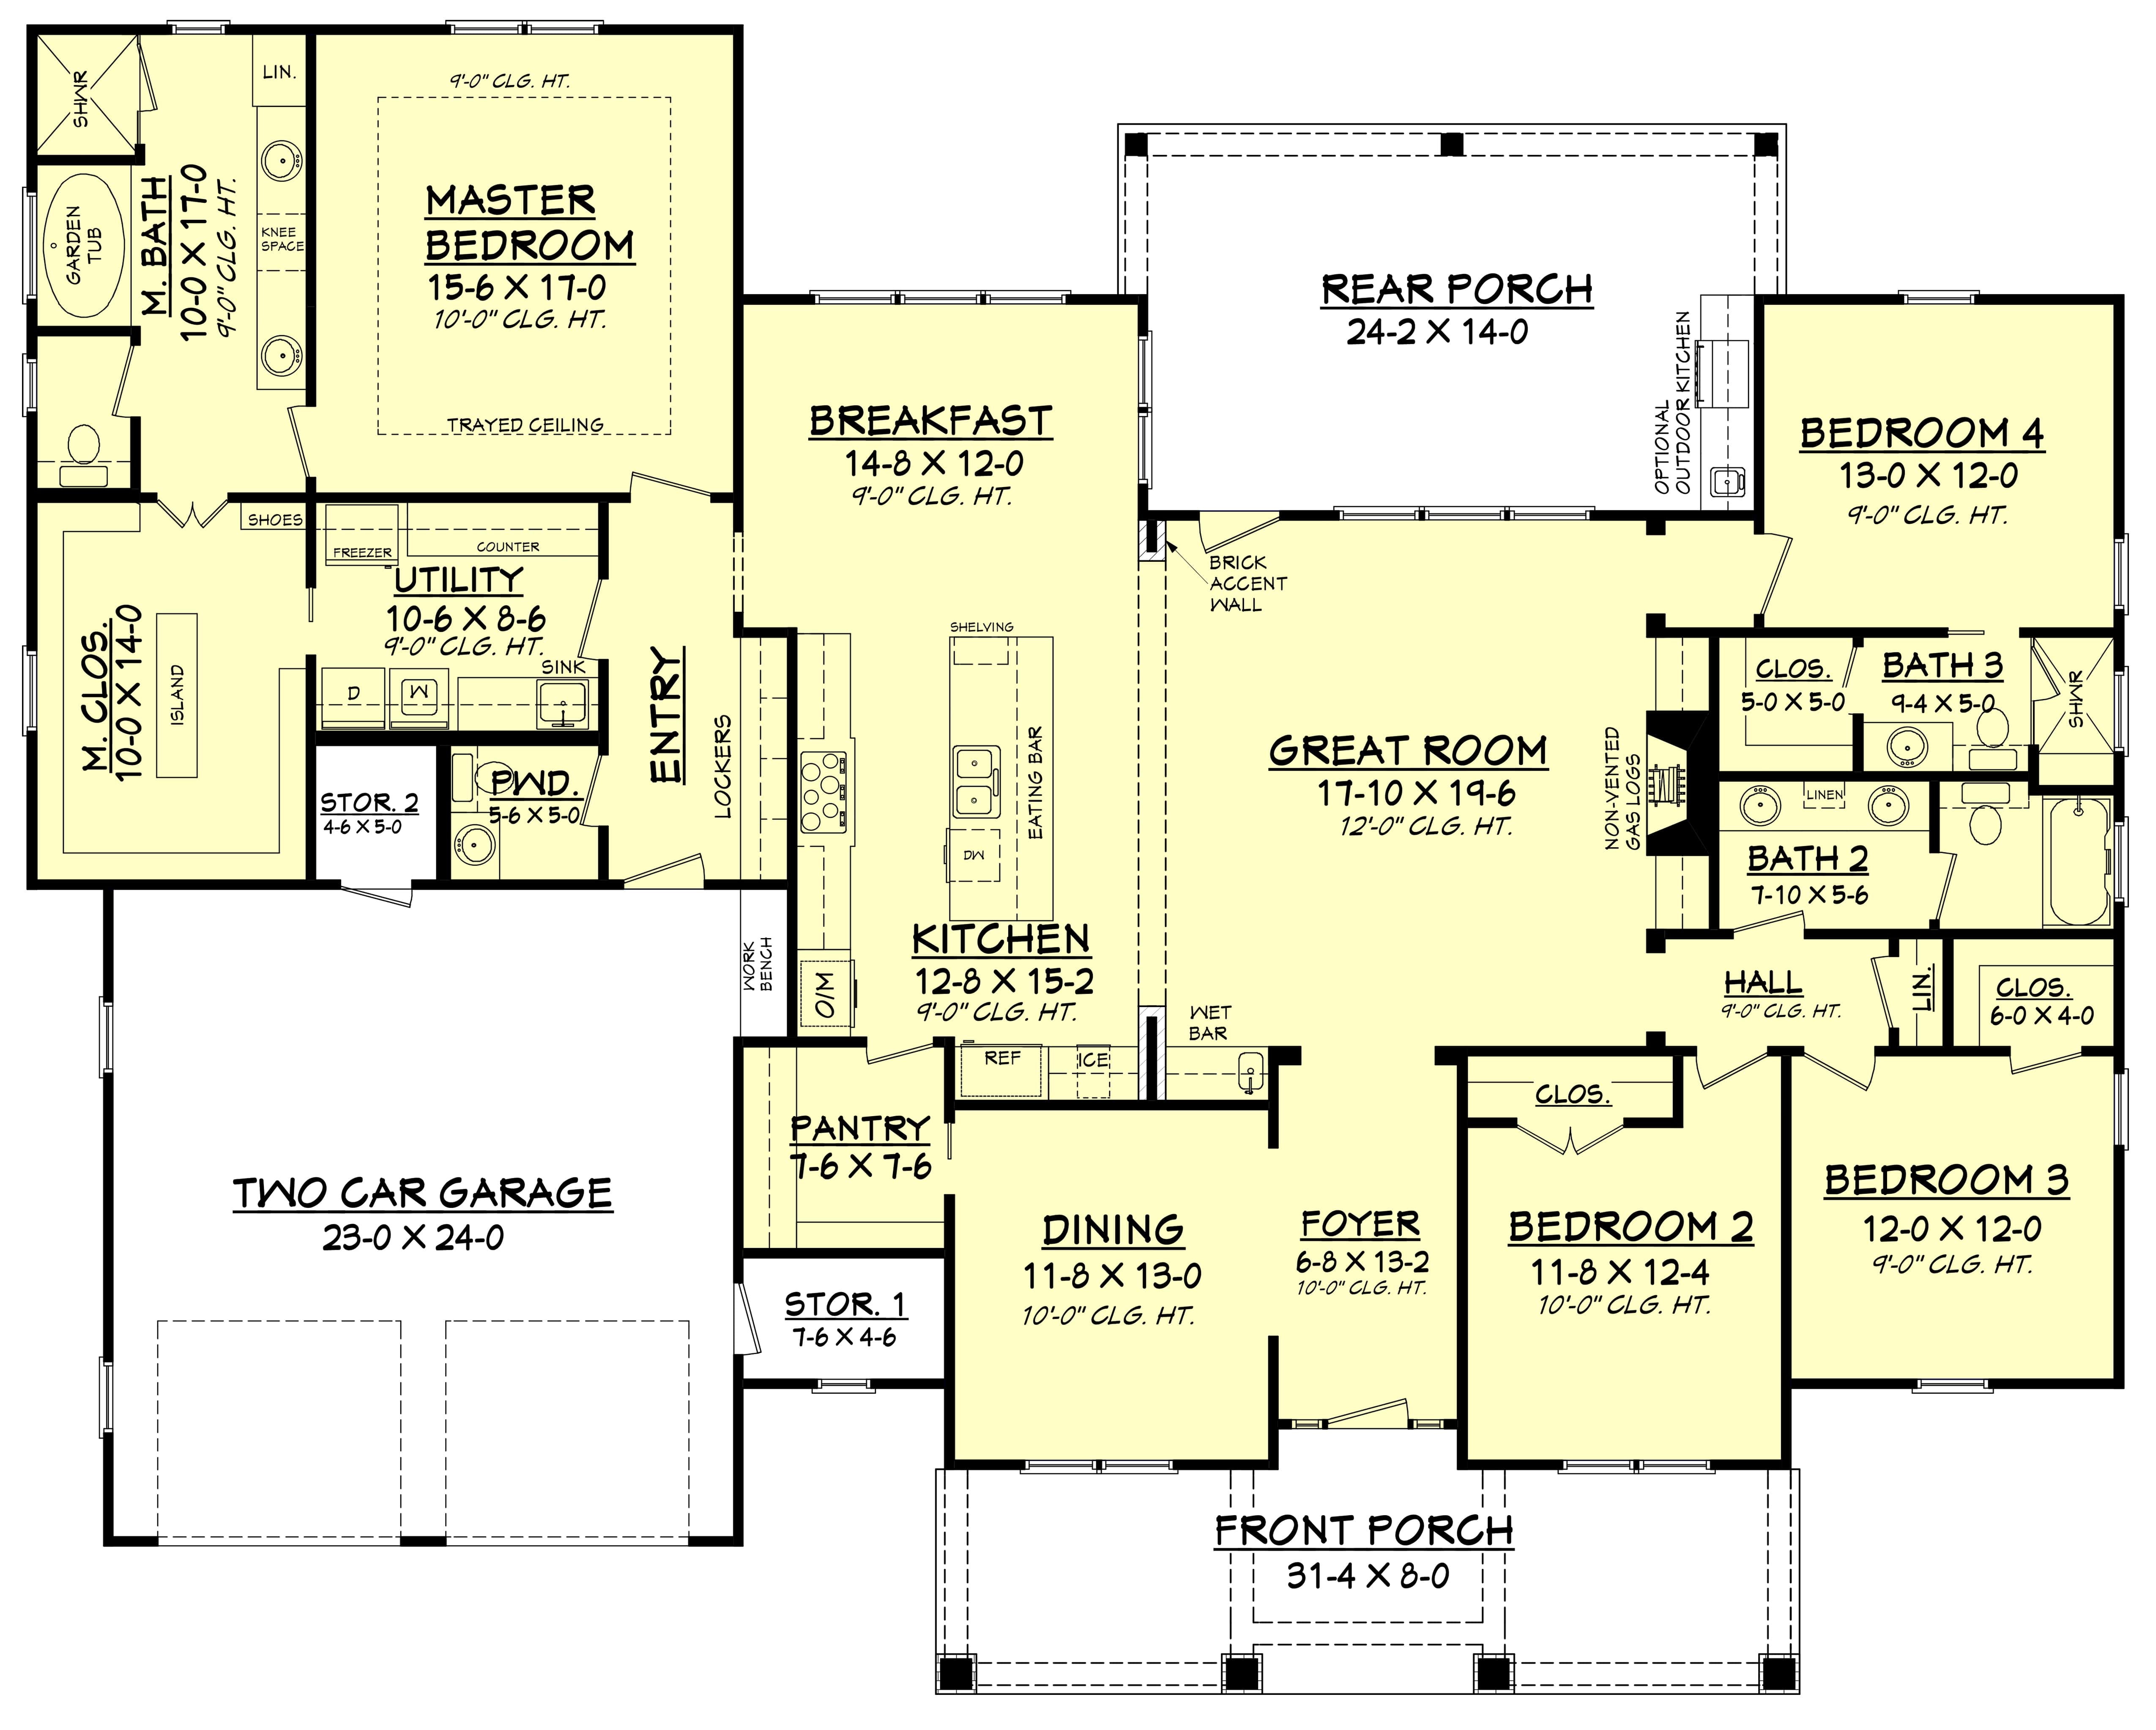 4 bedrm 2759 sq ft country house plan 142 1181 Model plans for house